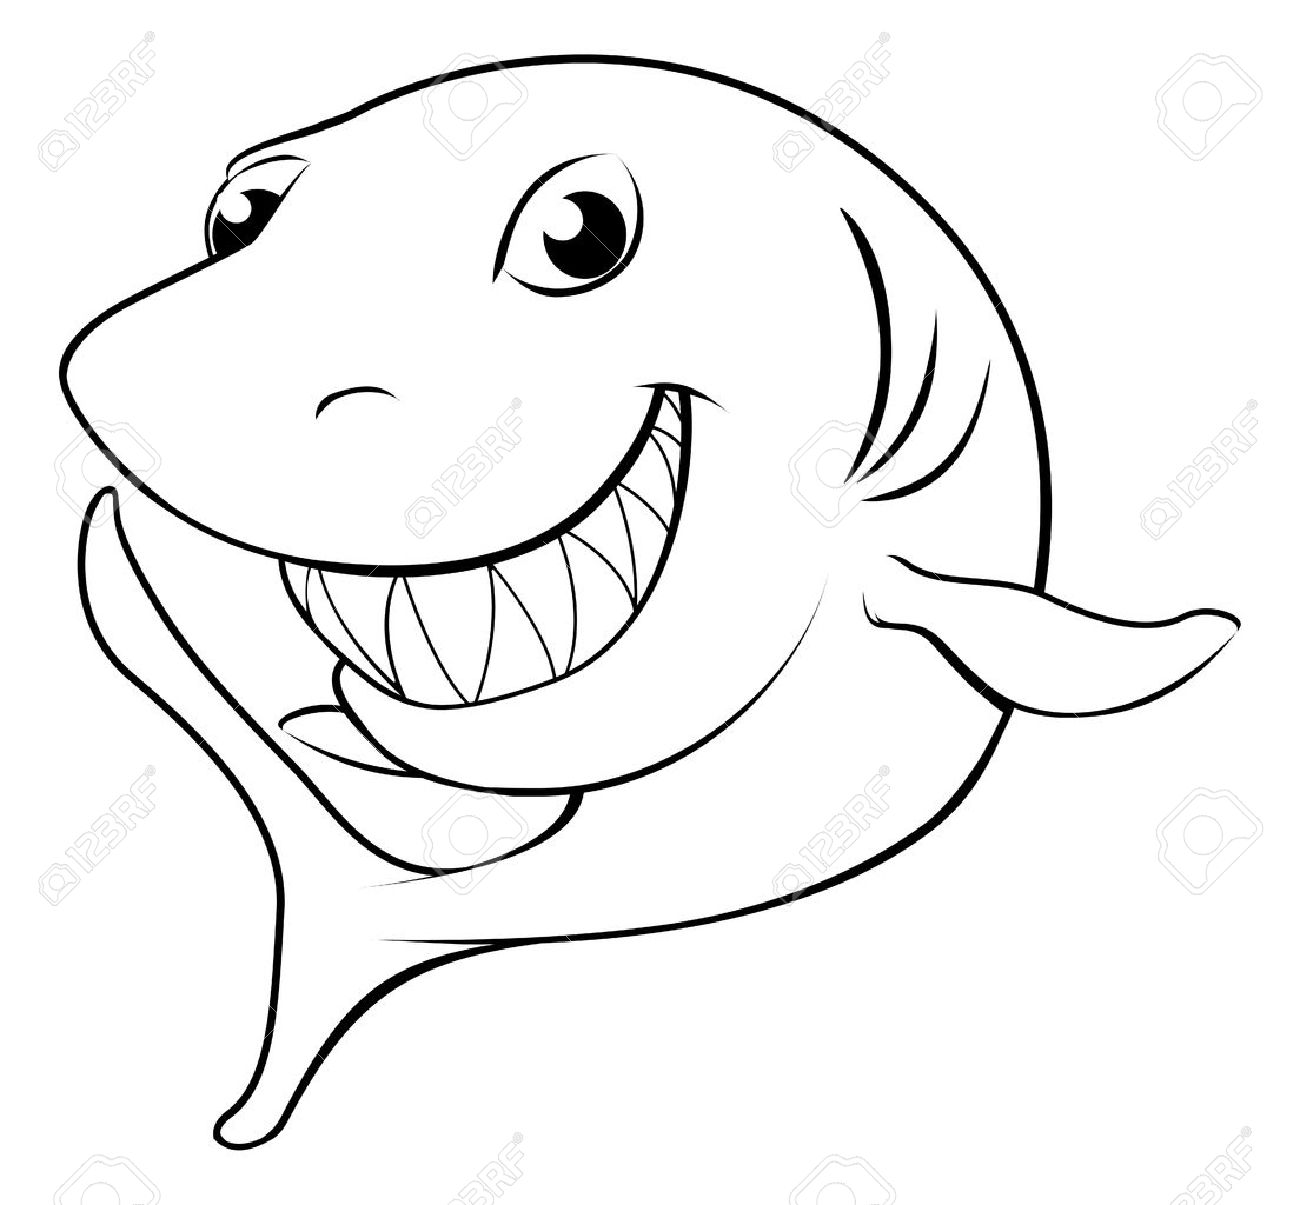 1300x1205 Black And White Illustration Of A Happy Cartoon Shark Royalty Free